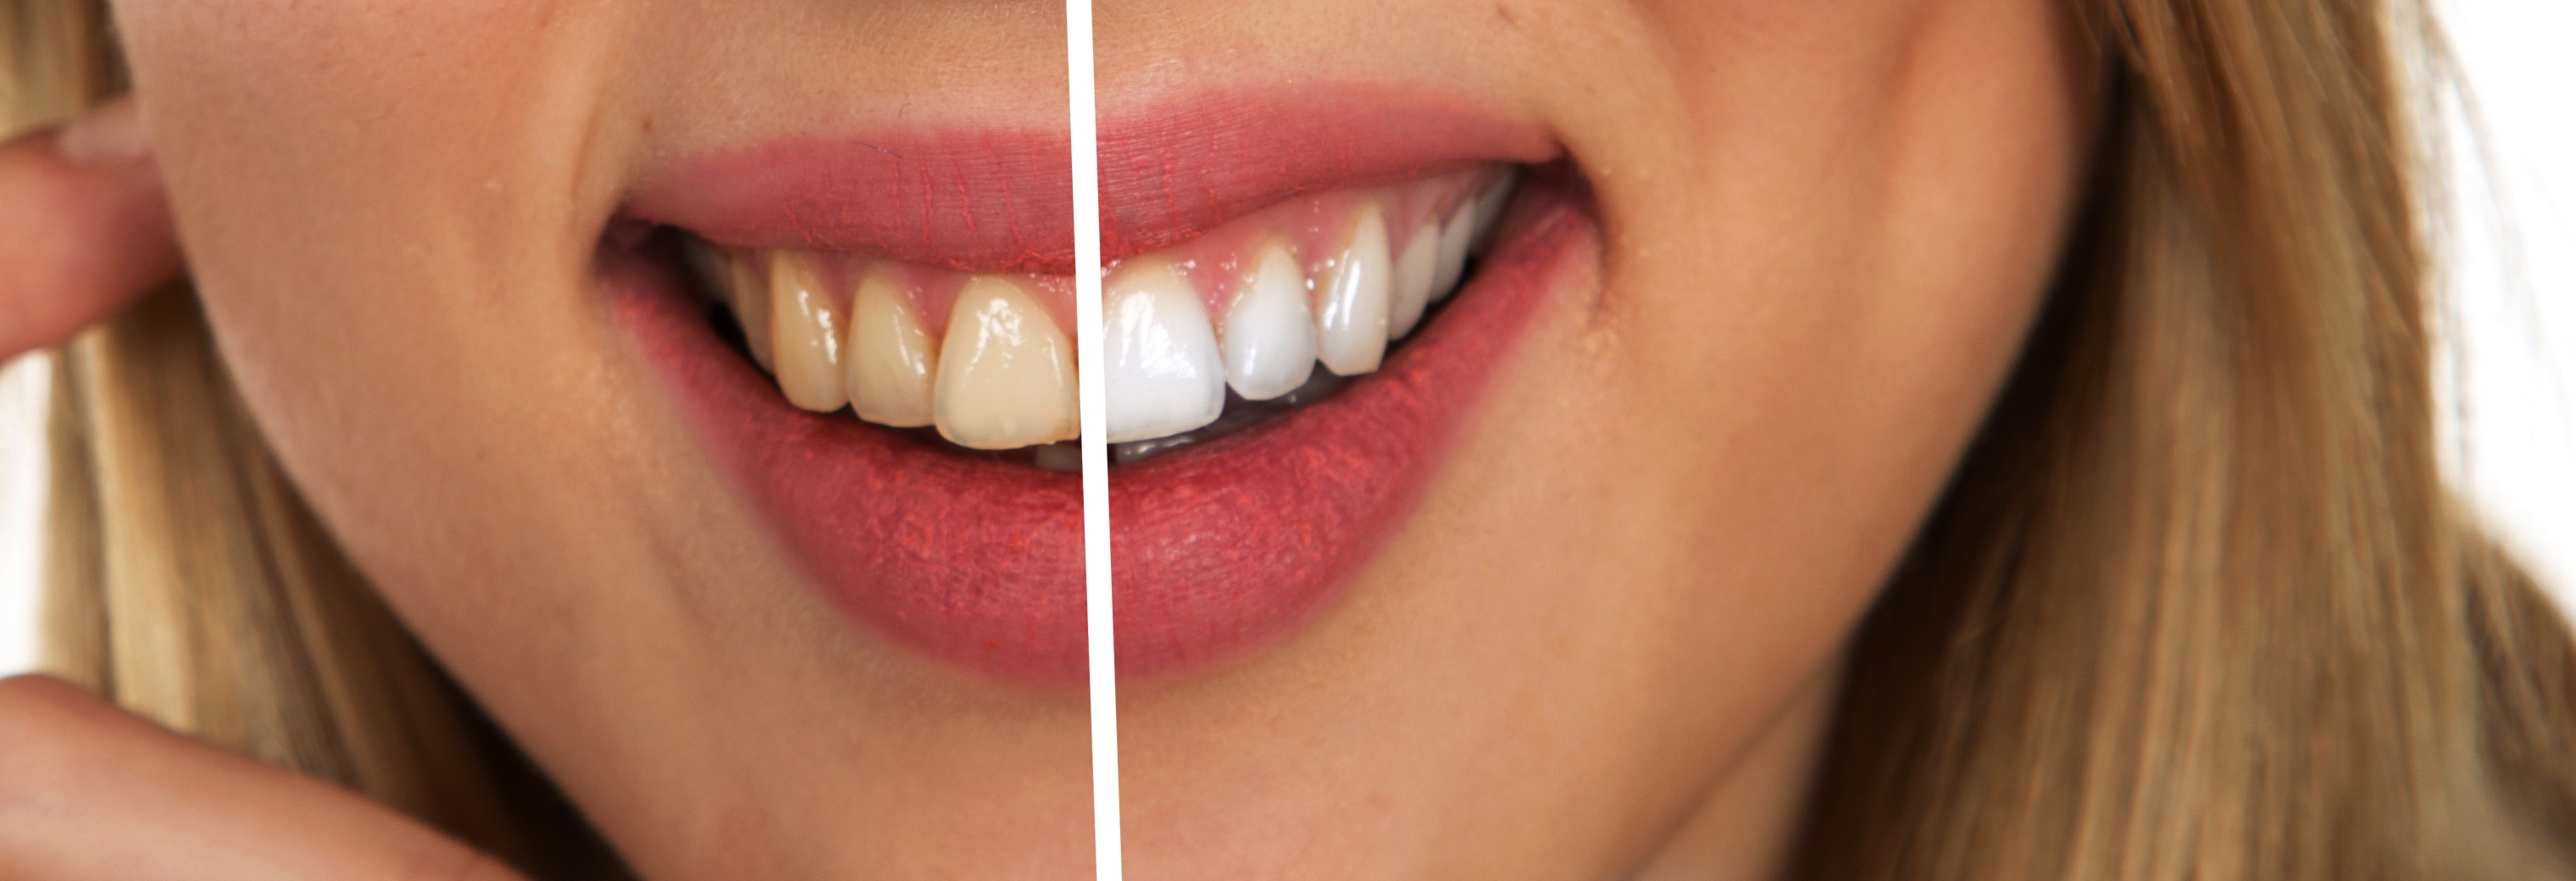 Selling whitening toothpaste will meet growing customer demand